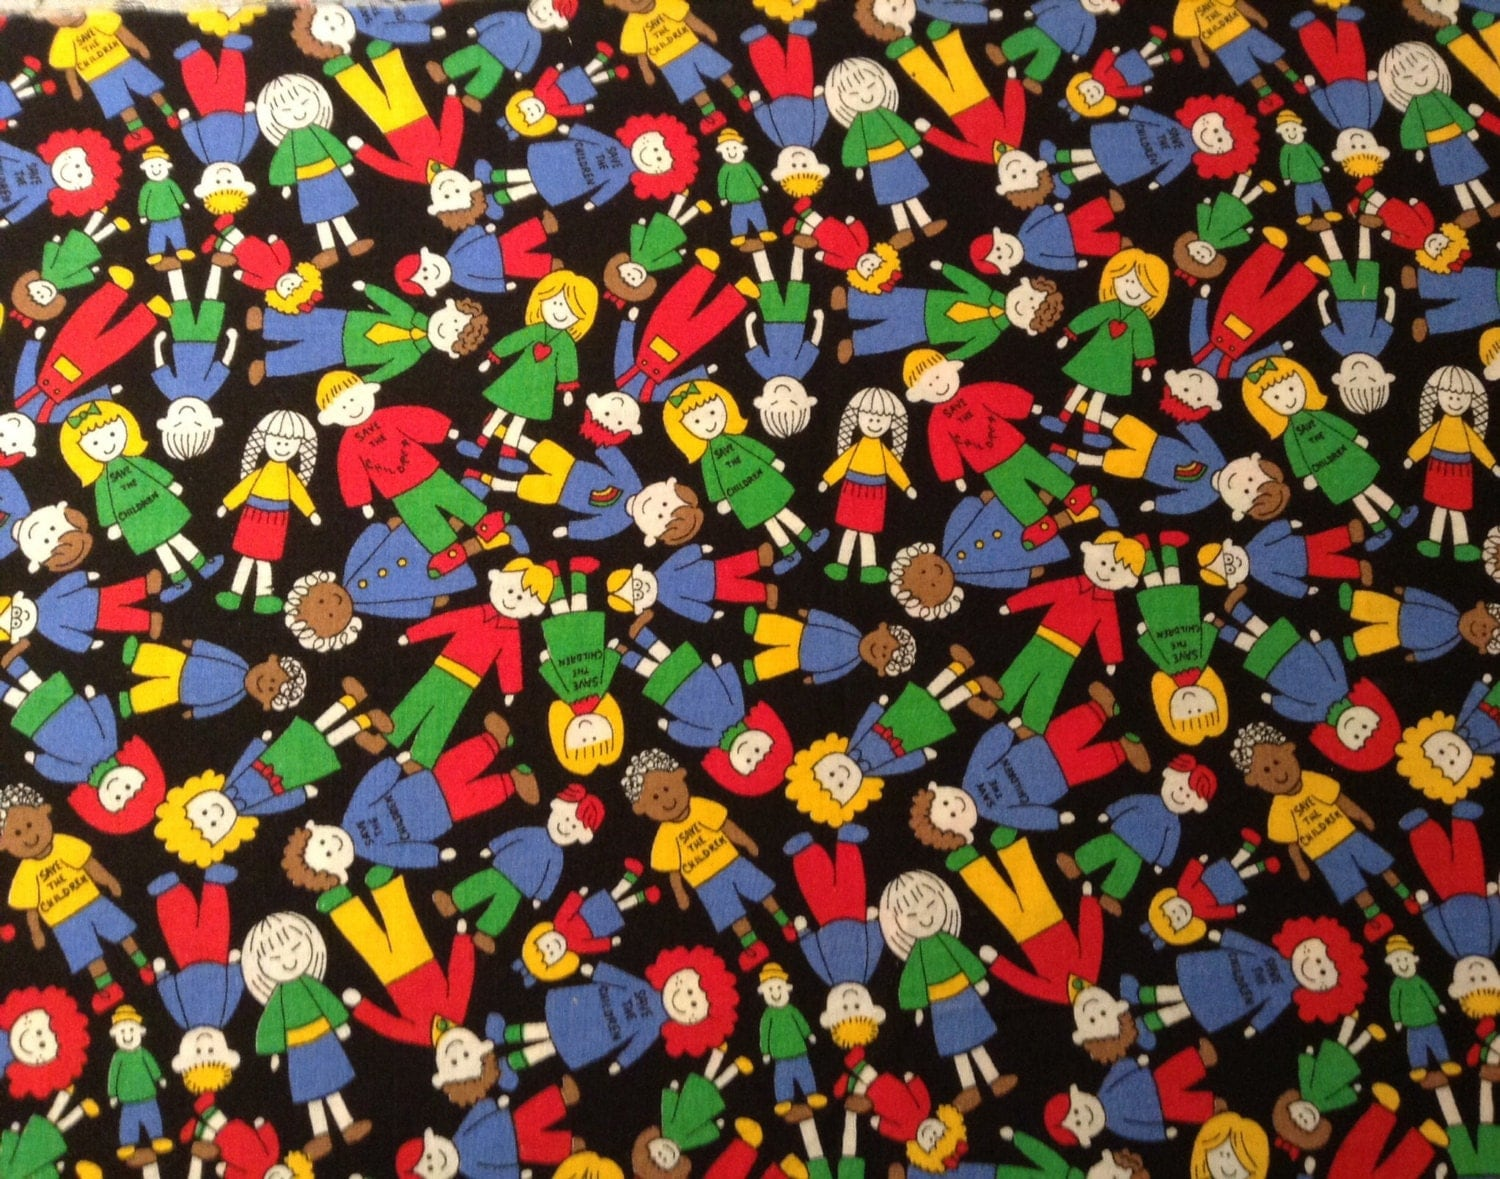 Save the children quilting fabric vintage fabric 1 3 yard for Childrens quilt fabric